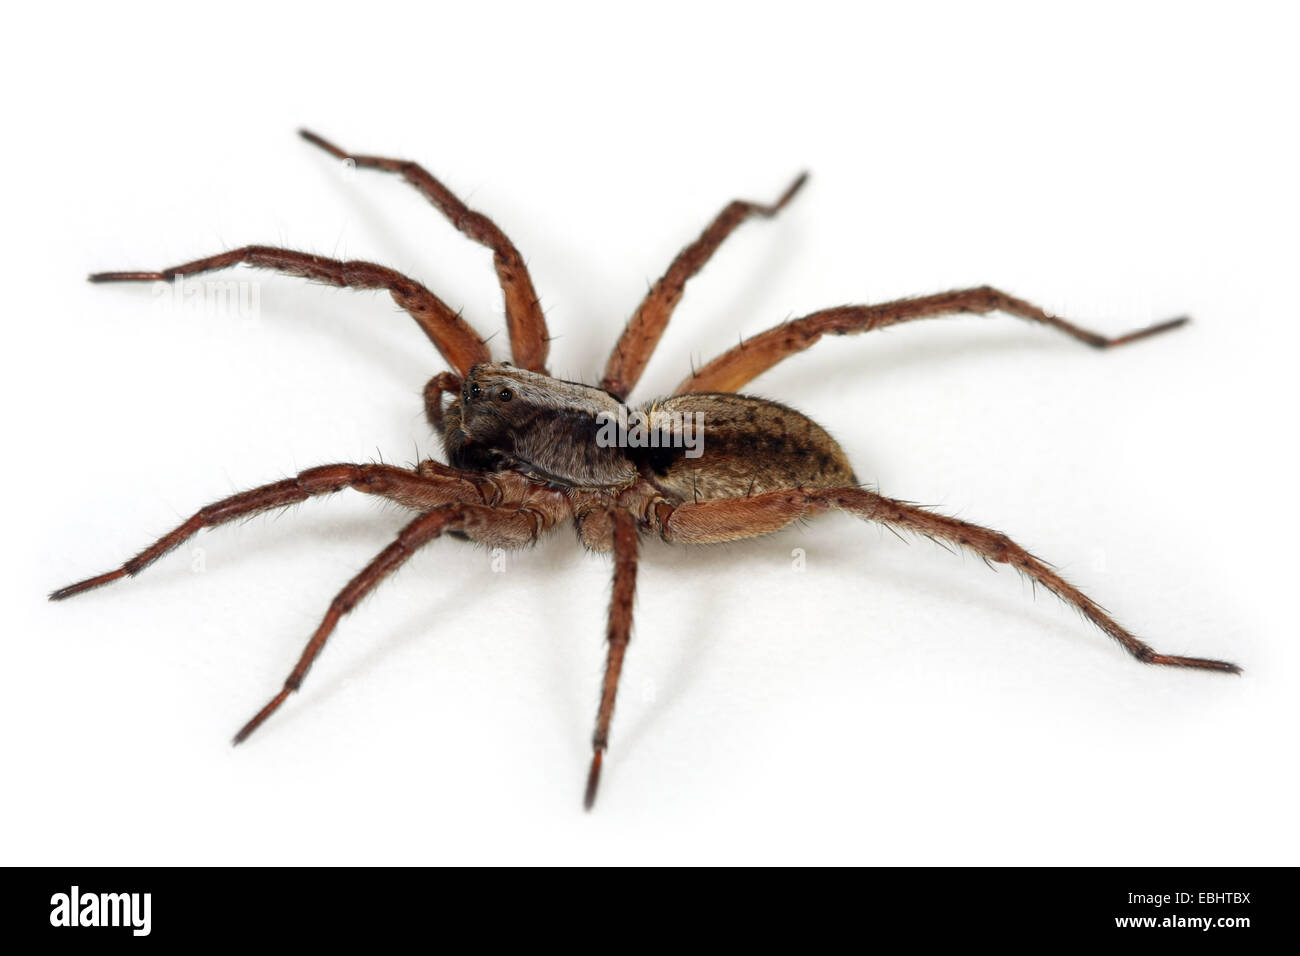 A Female Wolf spider (Alopecosa aculeata) on white background. Wolf spiders are part of the family Lycosidae. - Stock Image